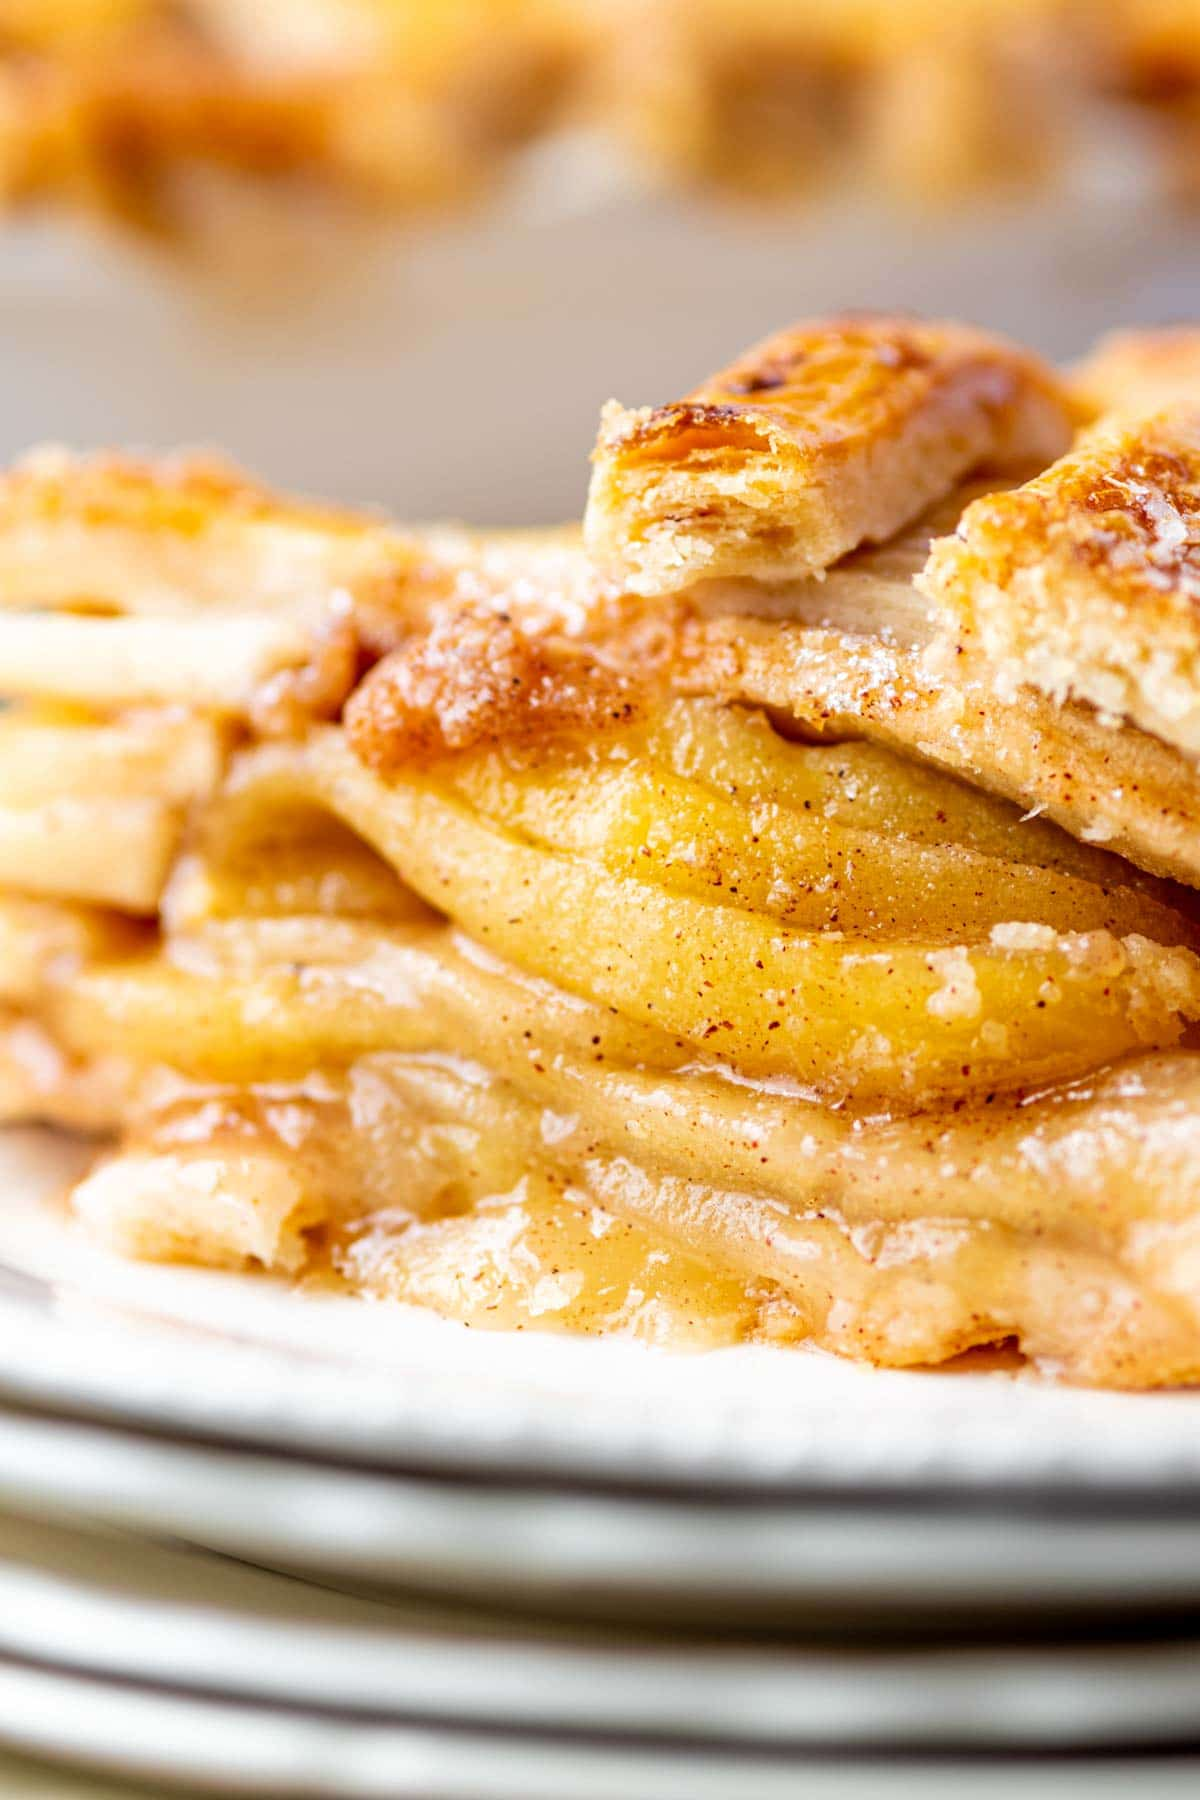 Piece of homemade apple pie on a stack of plates